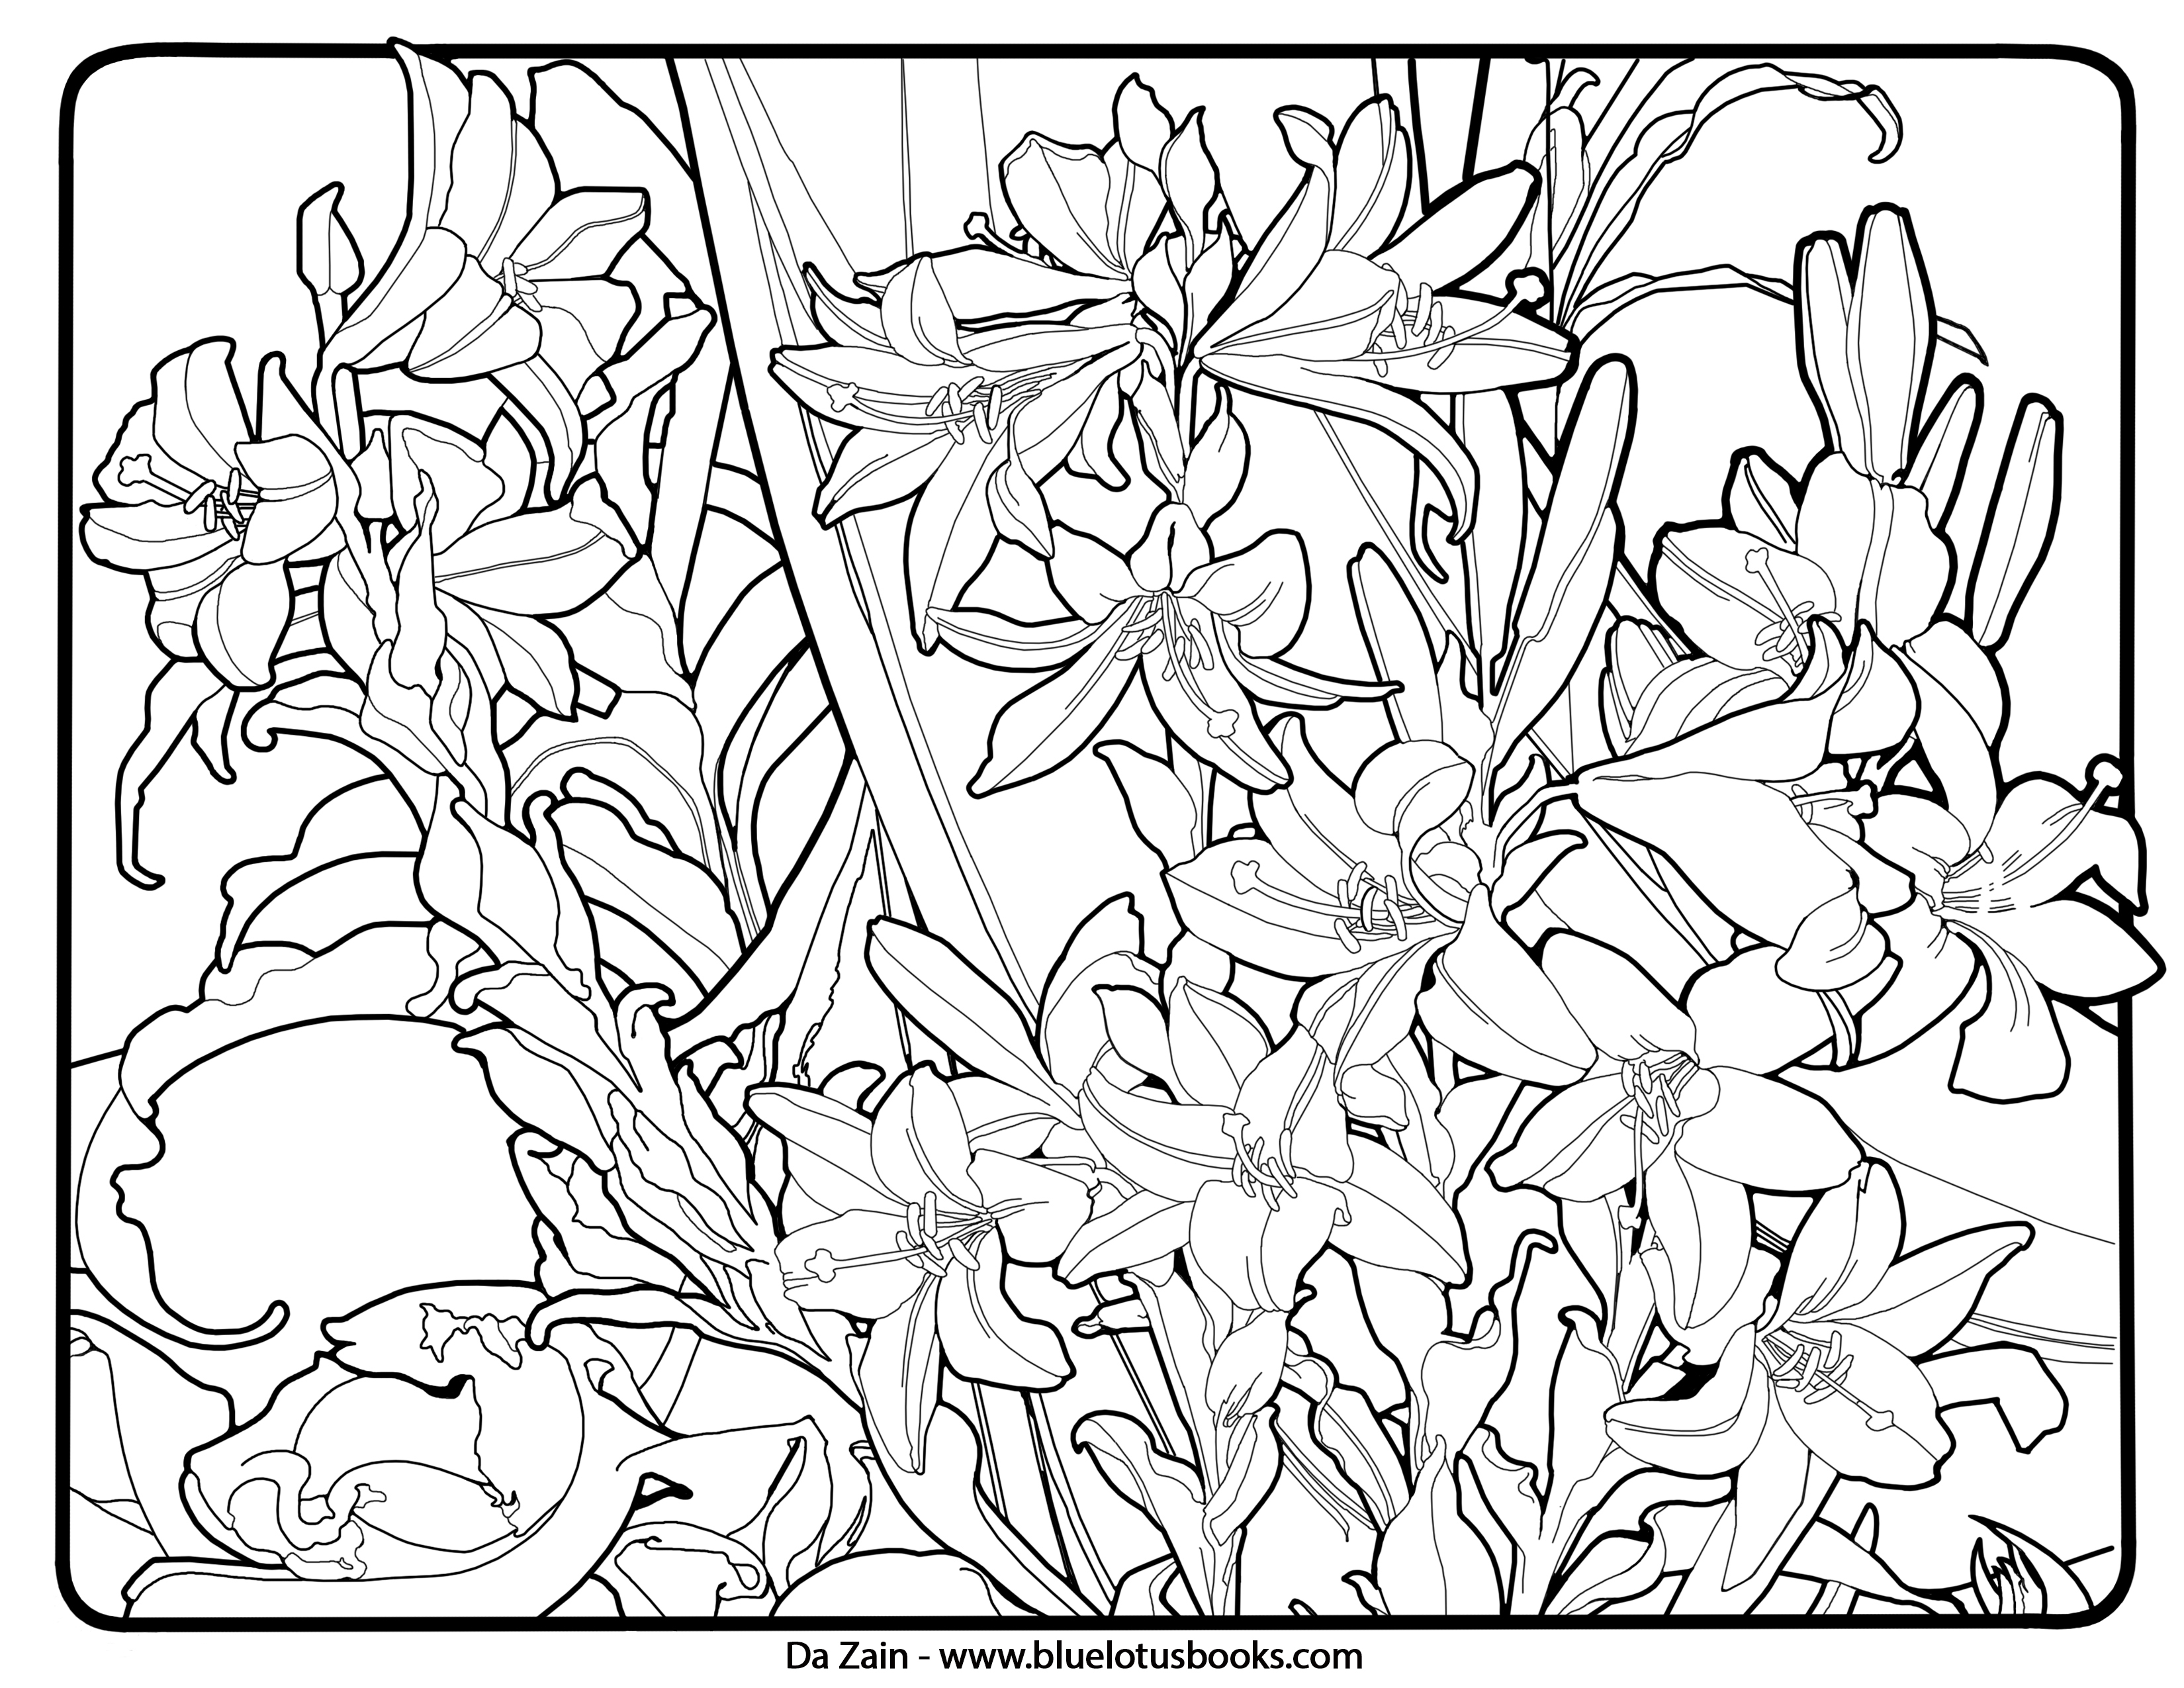 Alfons Mucha Art Nouveau Free Adult Coloring Pages – Adult